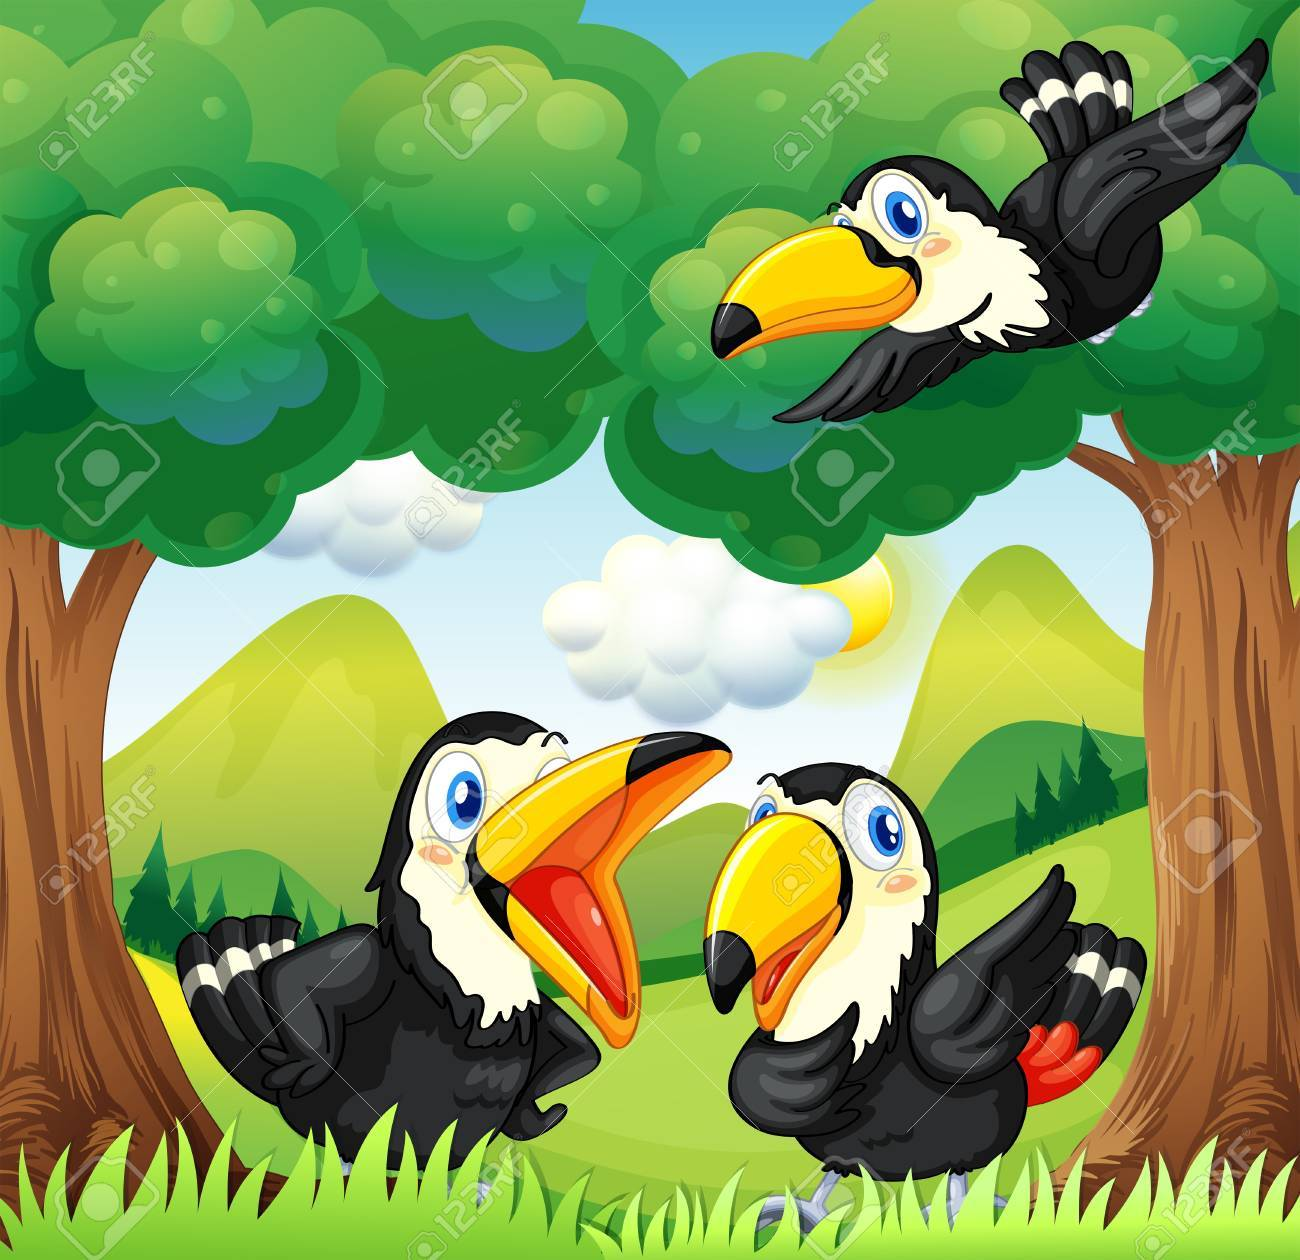 Illustration of the three black birds at the forest Stock Vector - 21095210